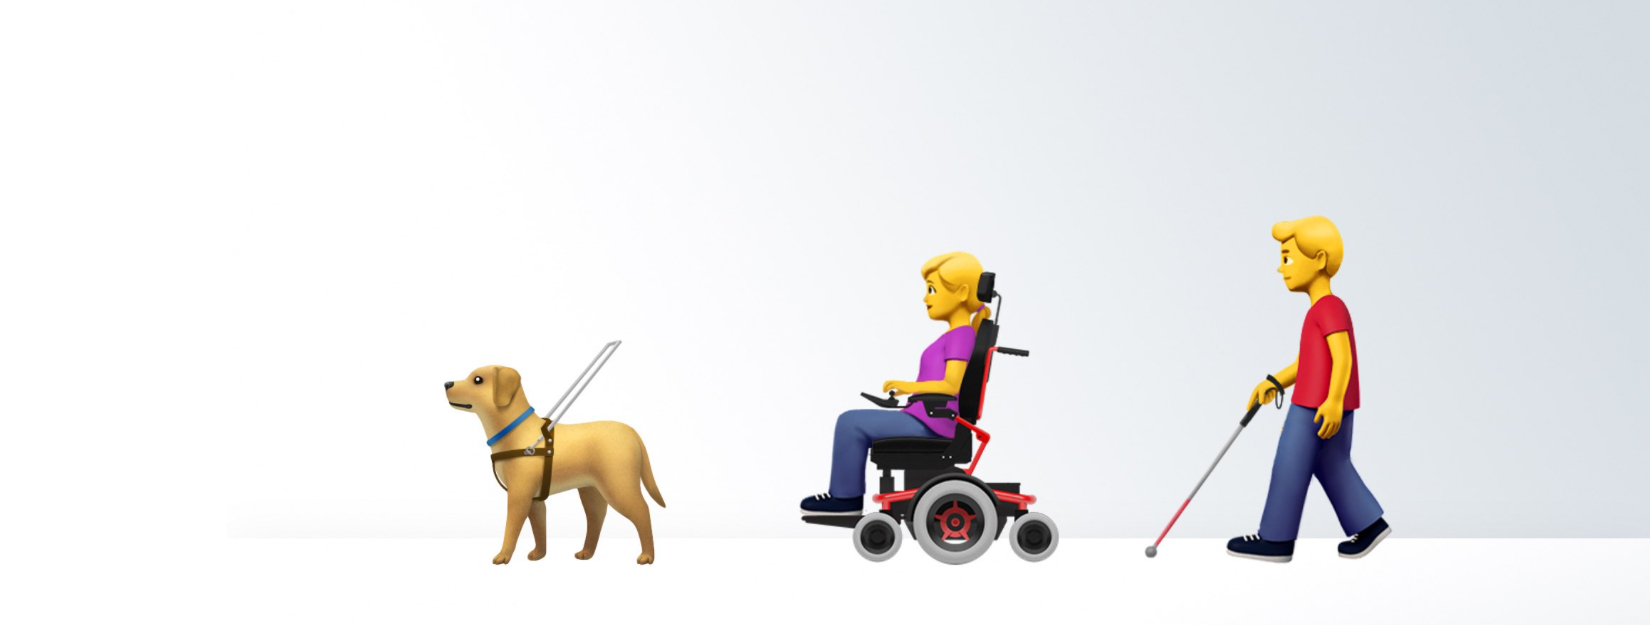 Apple Proposes New Accessibility Emojis